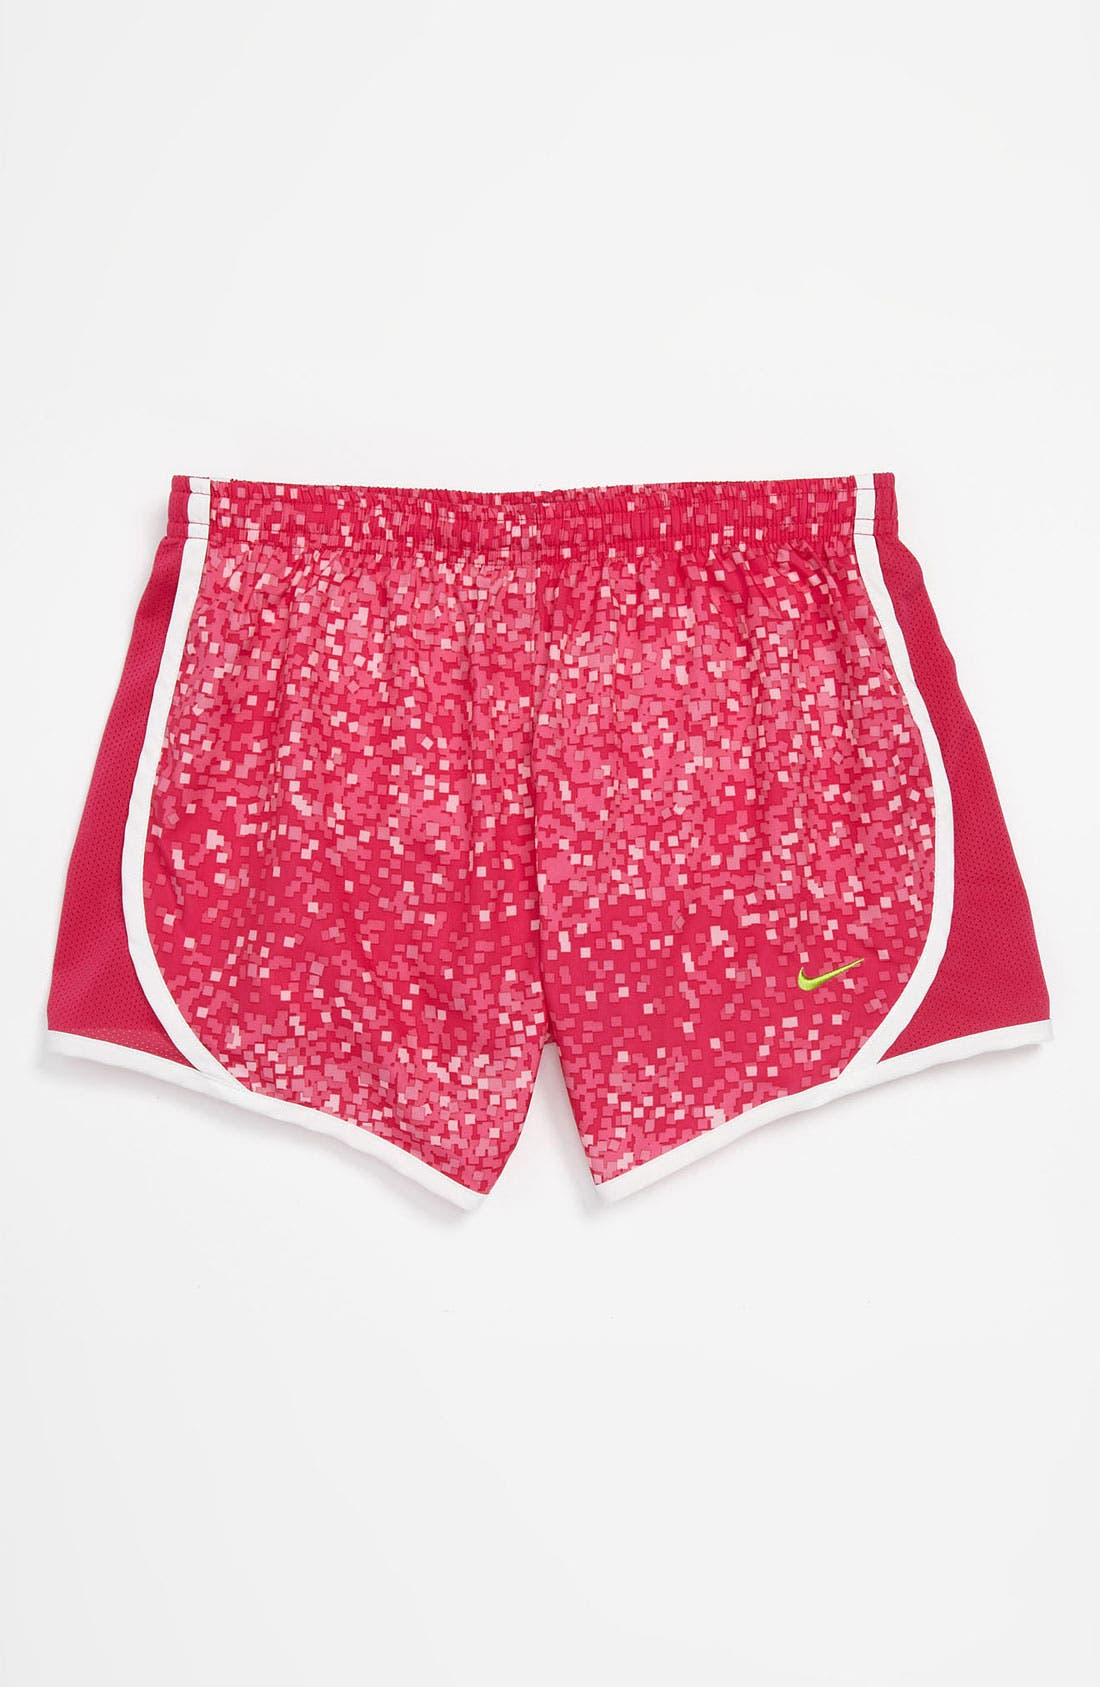 Alternate Image 1 Selected - Nike 'GFX Tempo' Shorts (Big Girls)